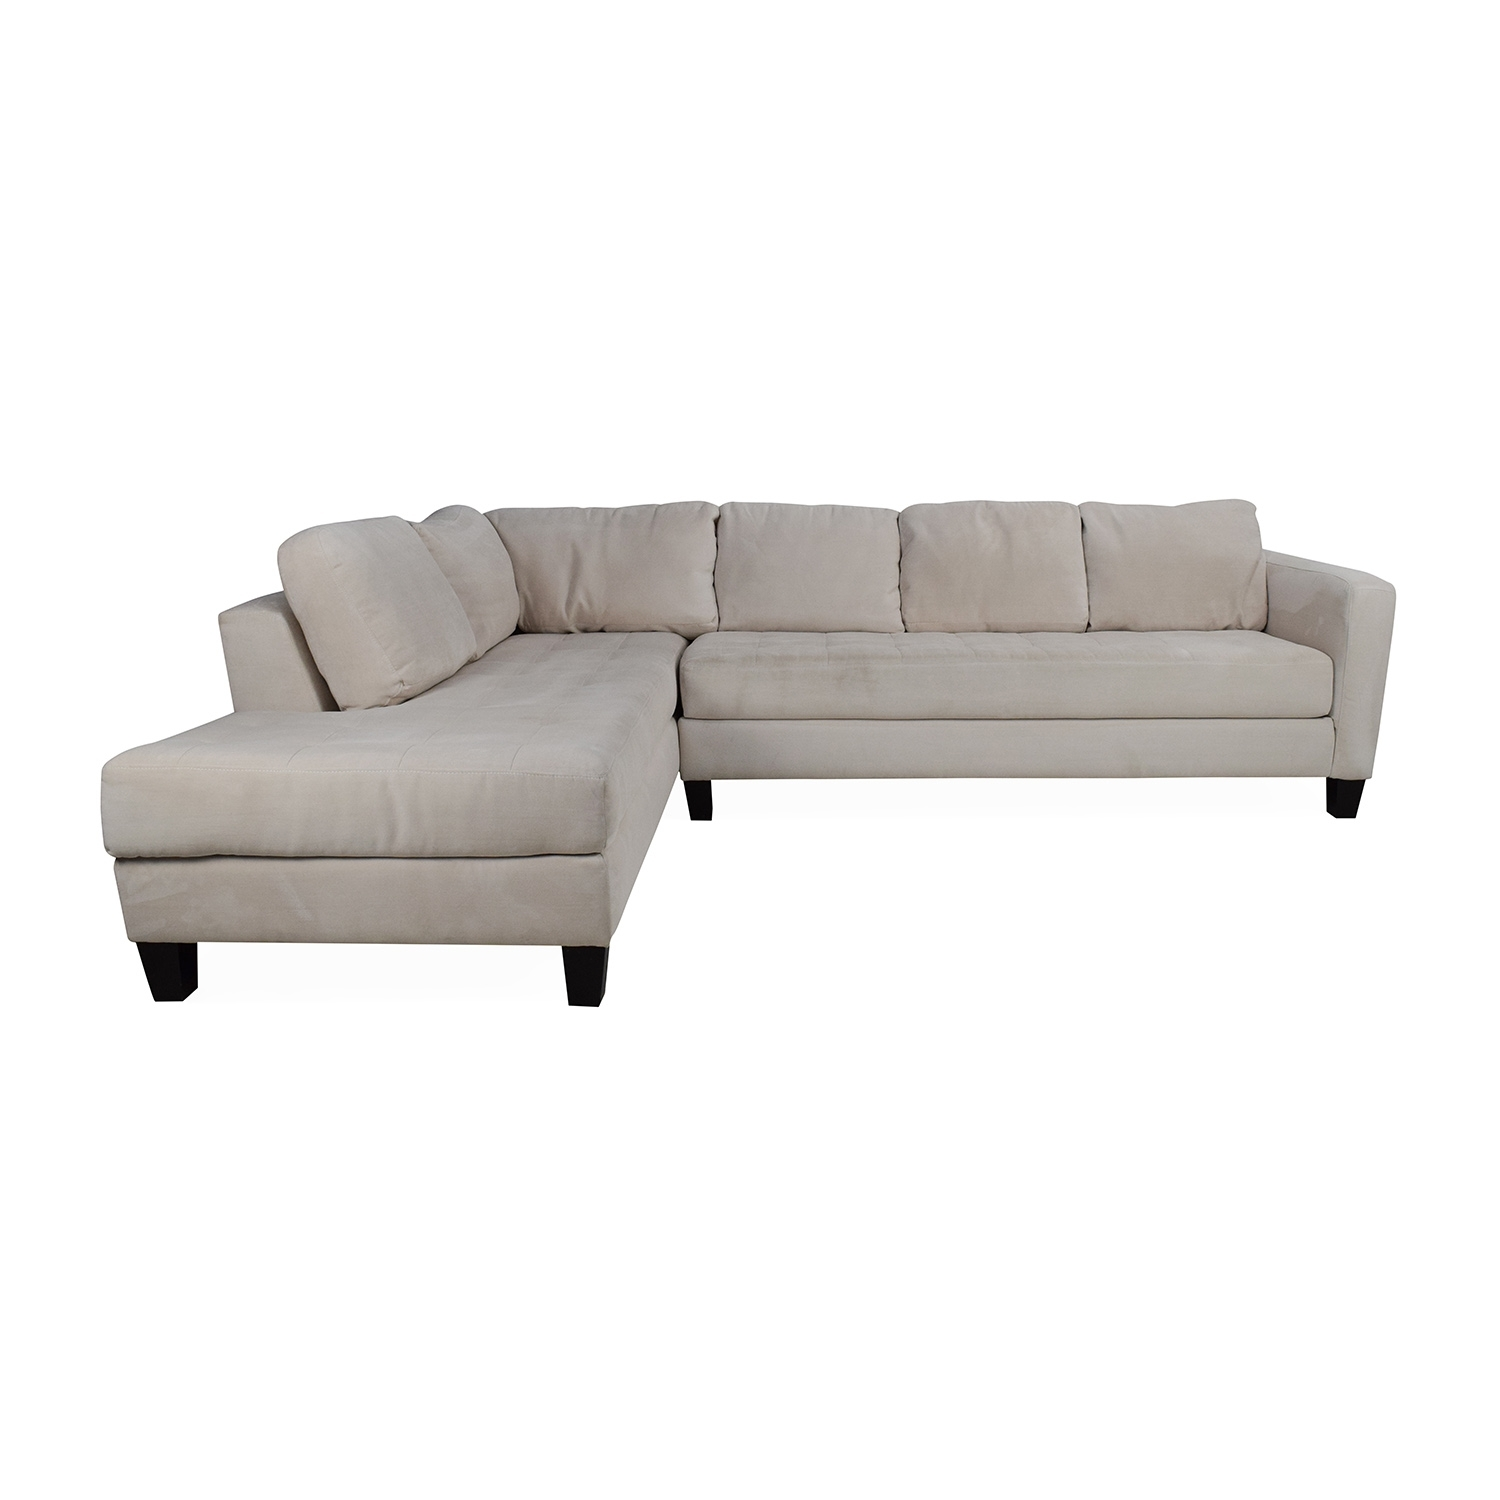 65% Off - Macy's Macy's Milo Fabric Microfiber Sectional / Sofas for Macys Sectional Sofas (Image 3 of 10)